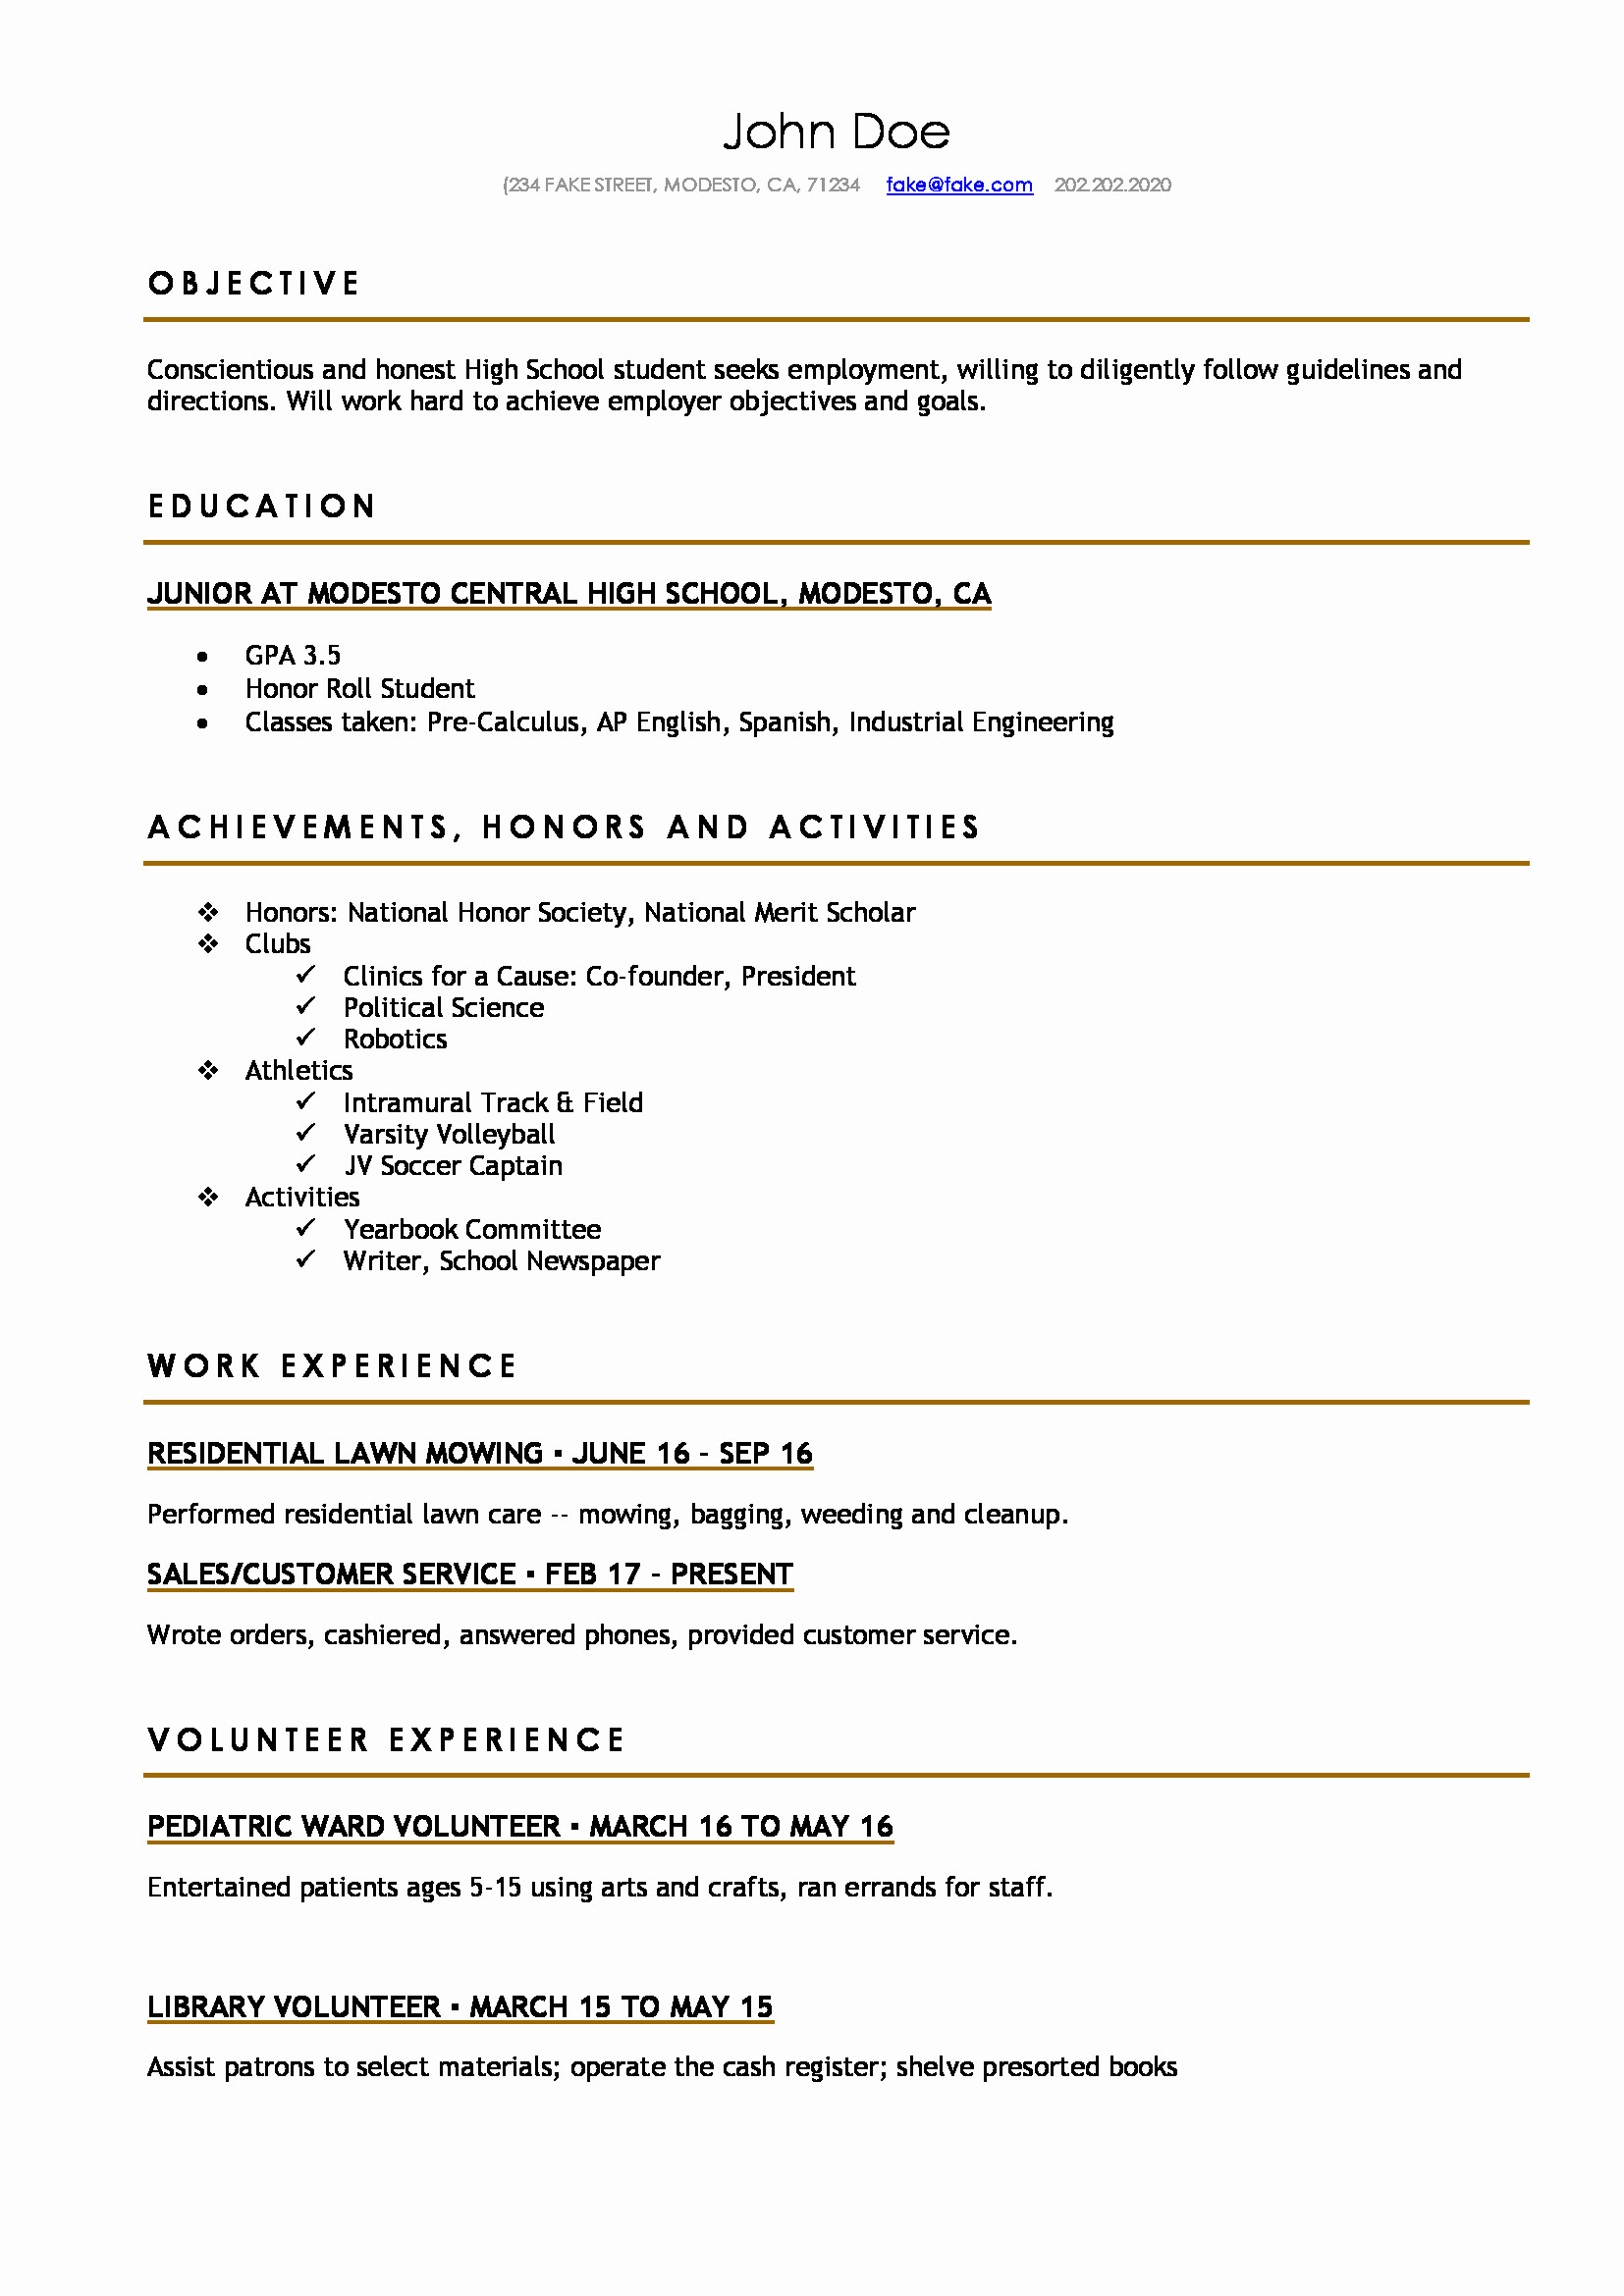 Free Resume Templates for Students Fresh High School Resume Resumes Perfect for High School Students